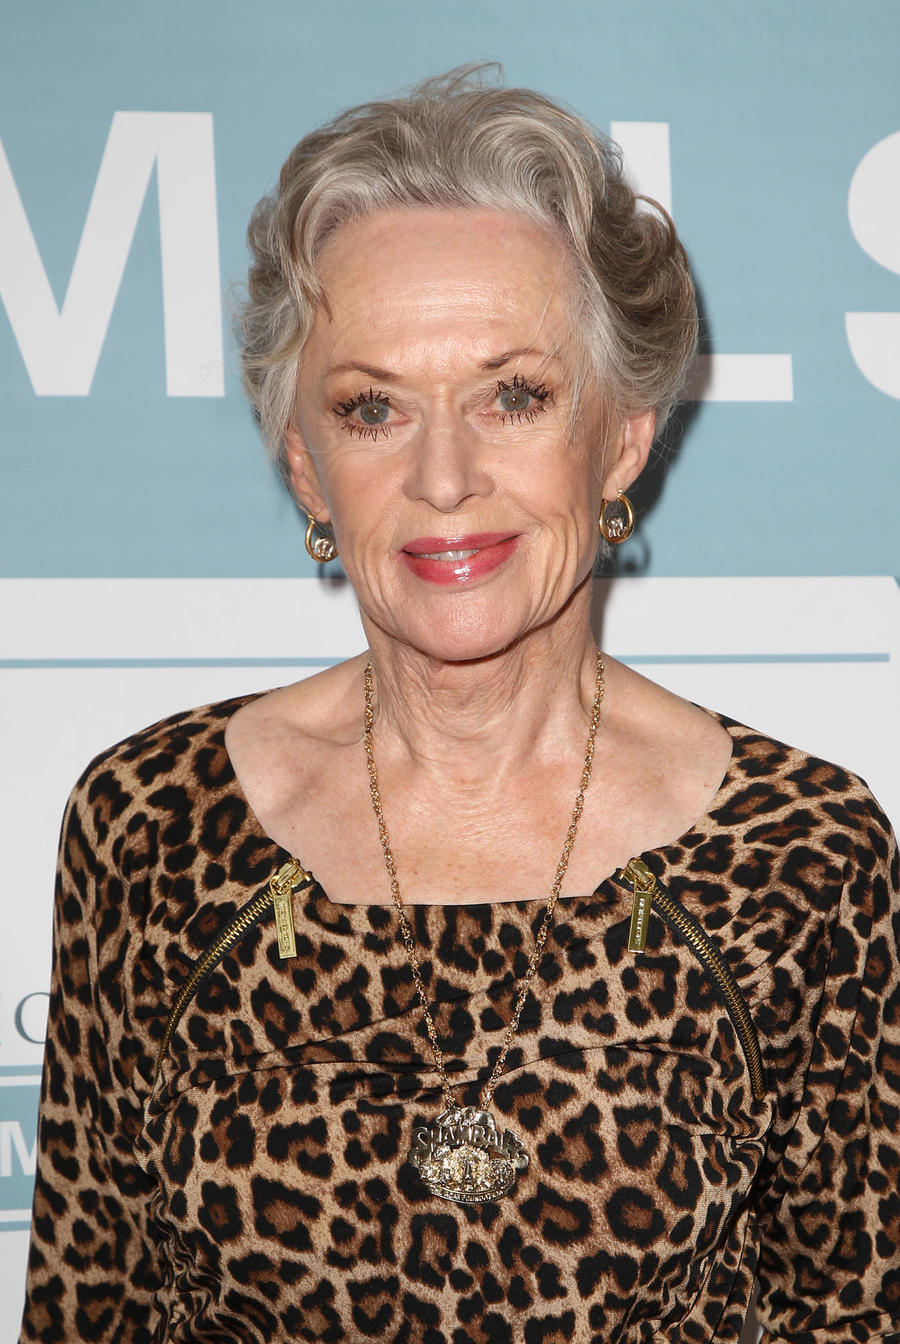 Tippi Hedren Refused To Evacuate Big Cat Preserve Amid Weekend Wildfire Drama